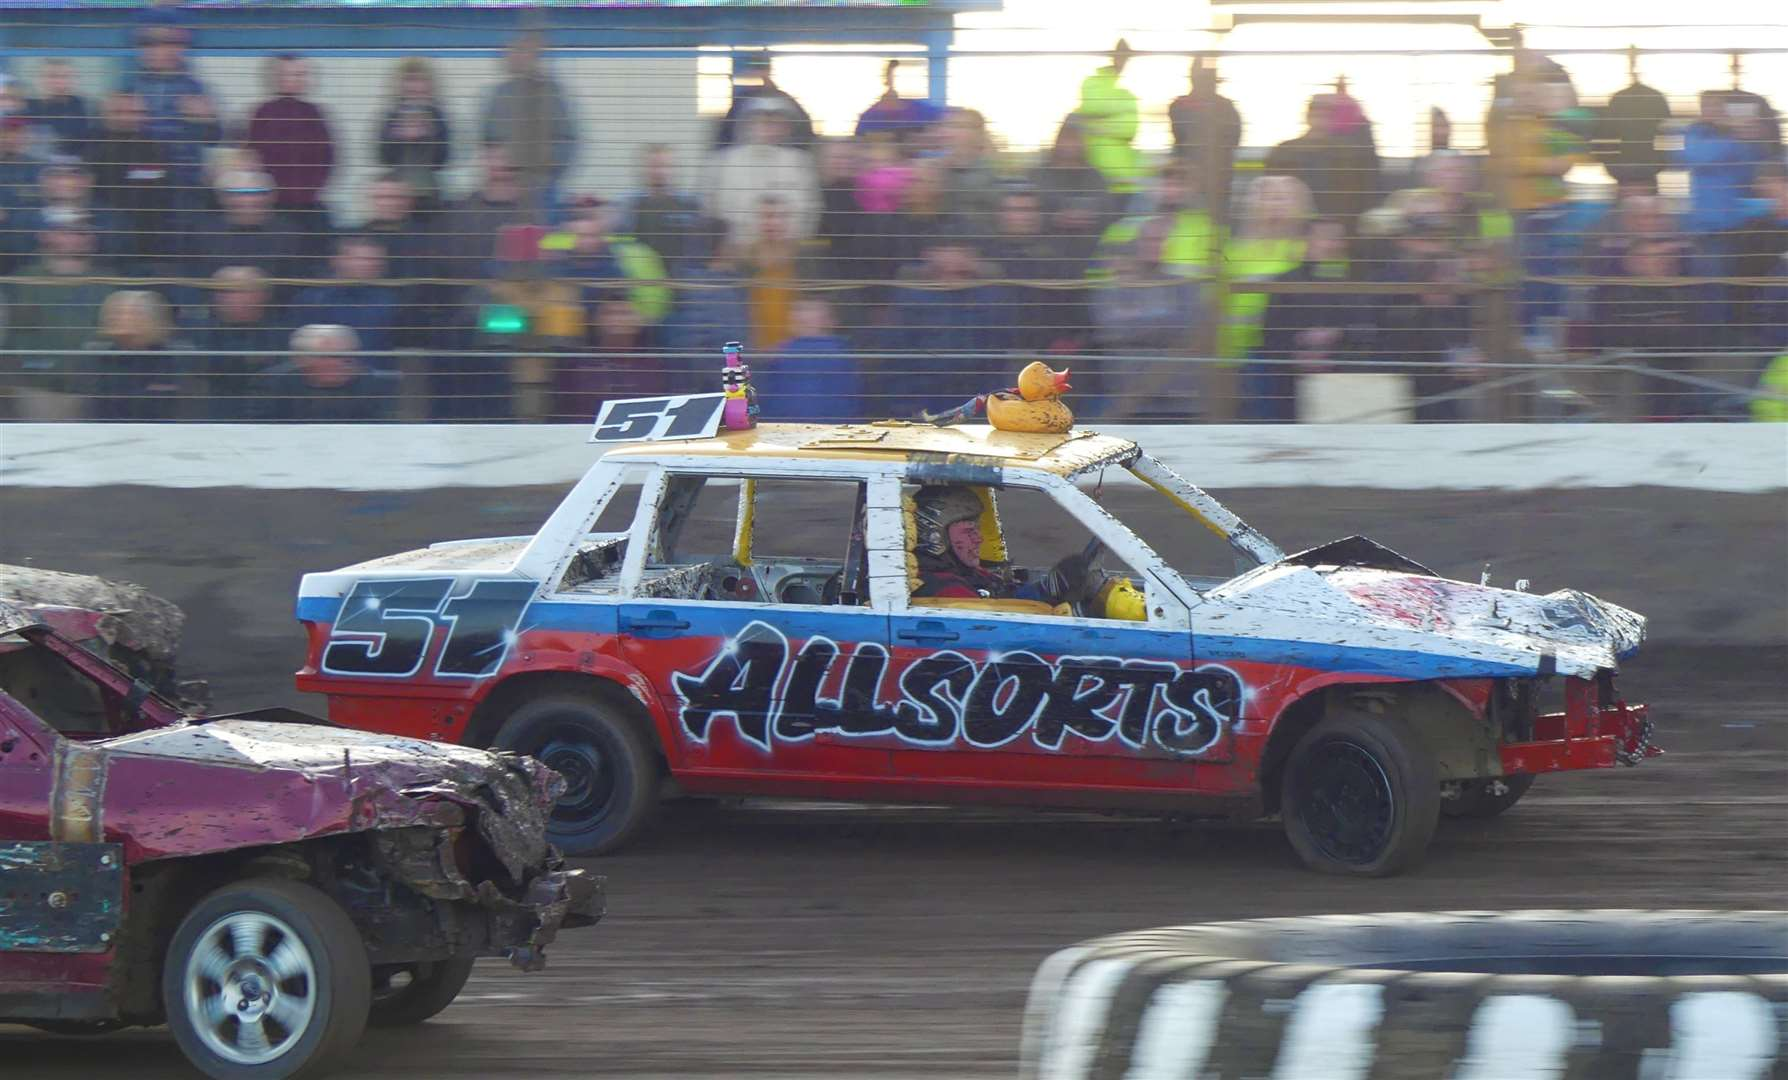 James Licquorice in the Unlimited Banger World of Shale race 9.19(16312216)